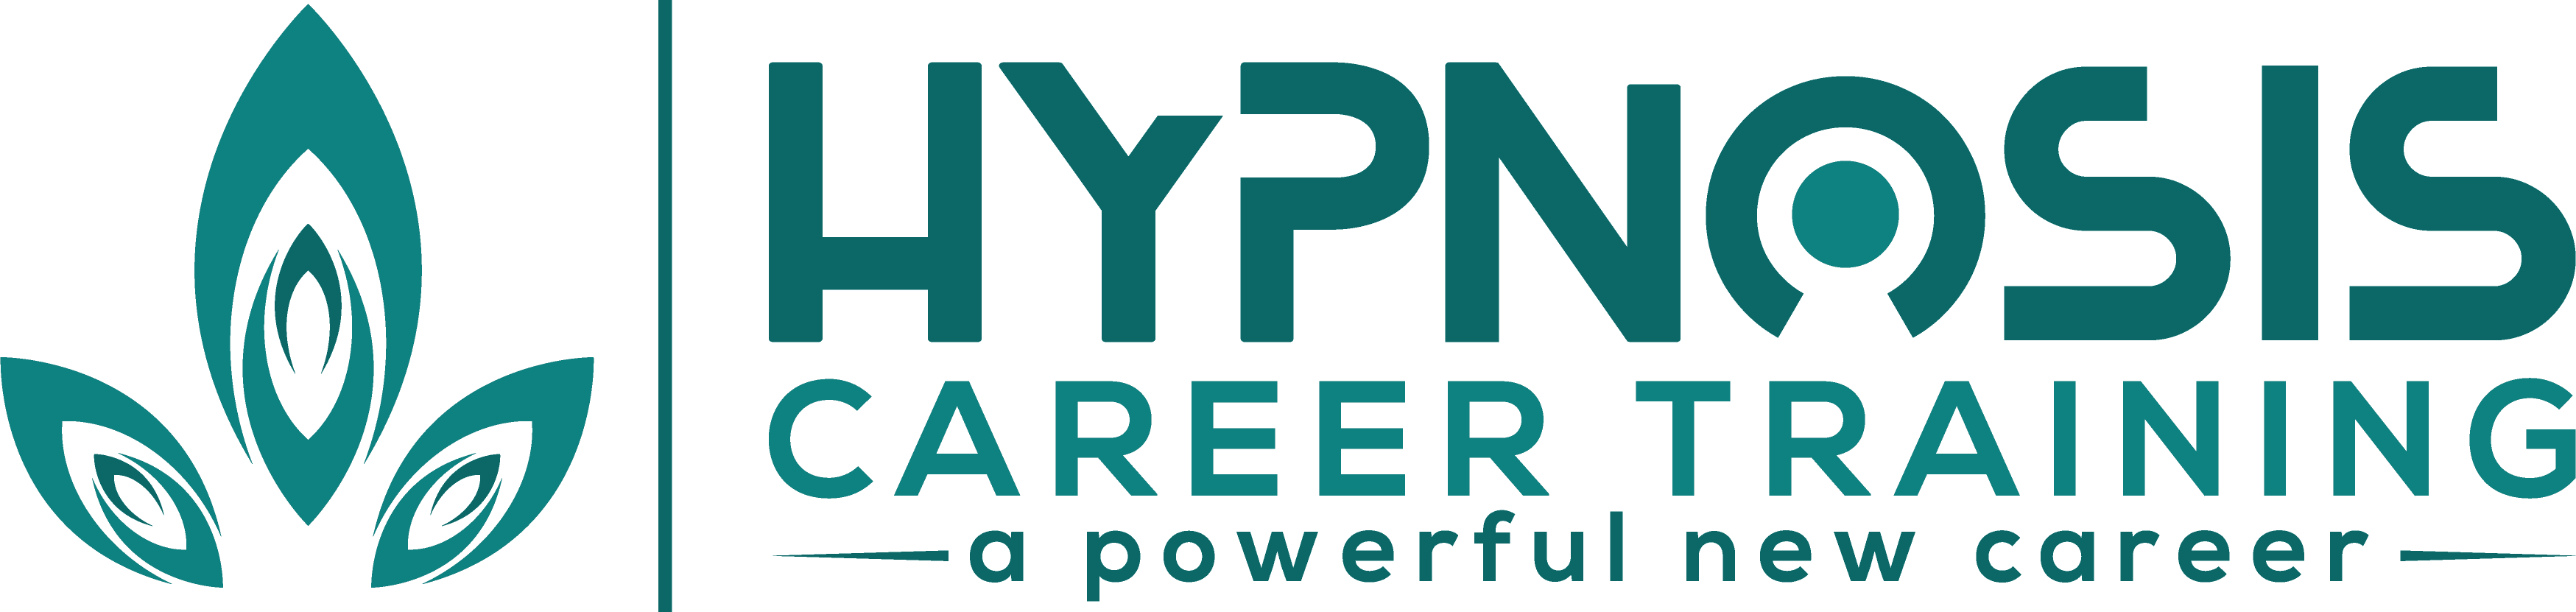 Hypnosis Career Training